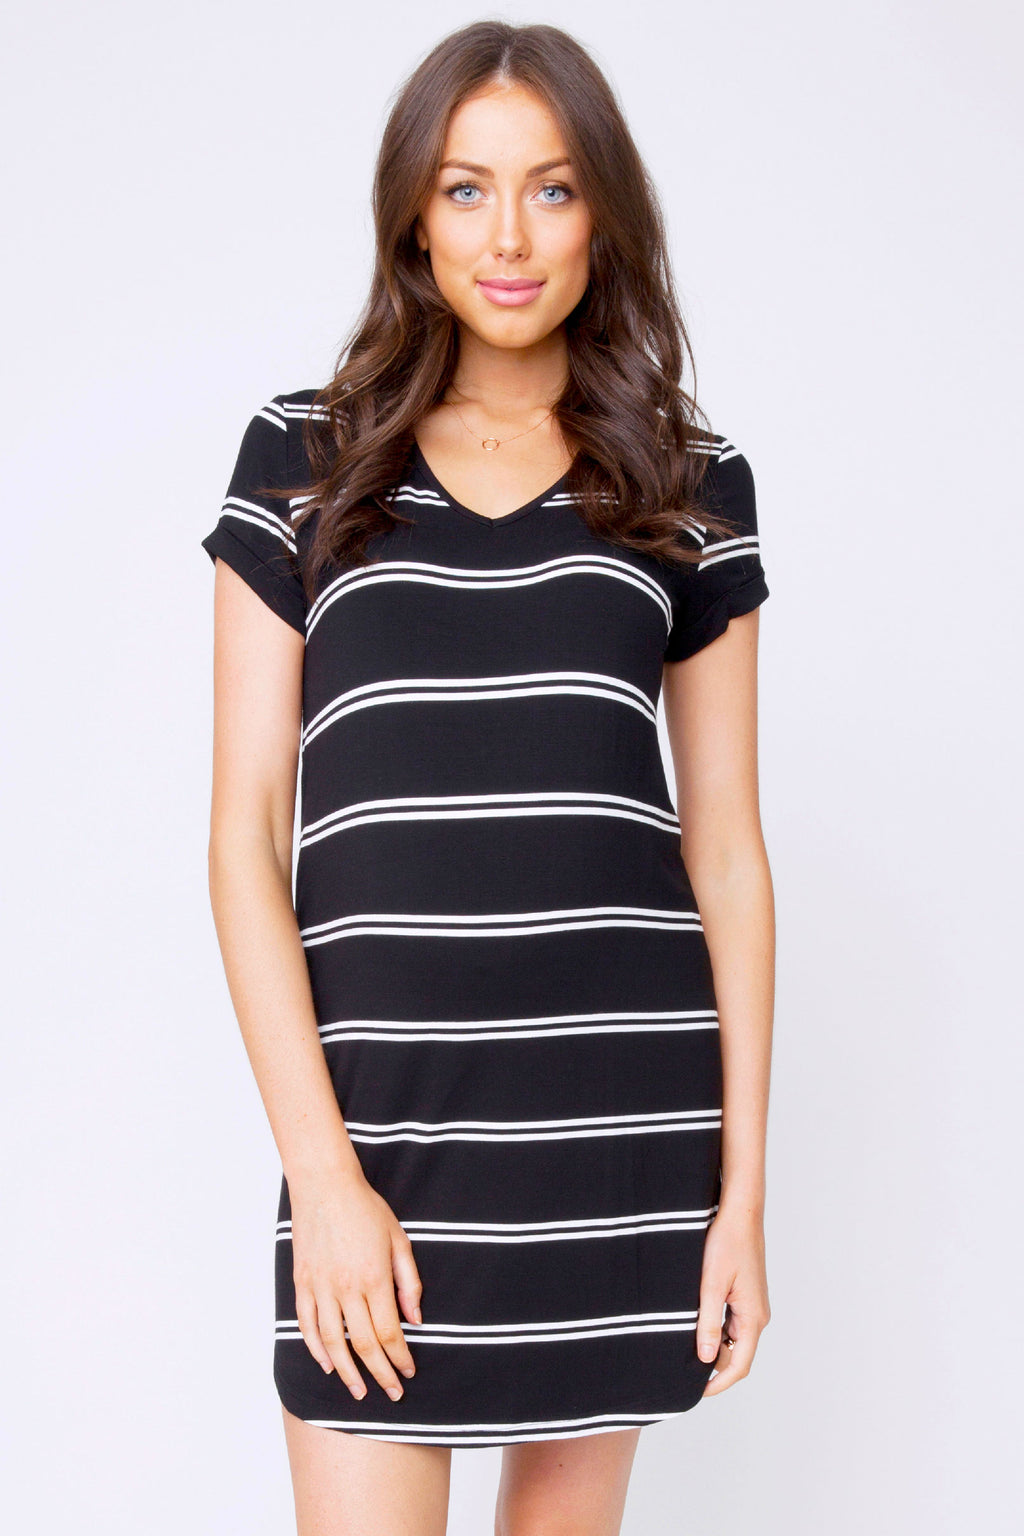 Renfri Relaxed T-shirt Dress by Ripe - Seven Women Maternity